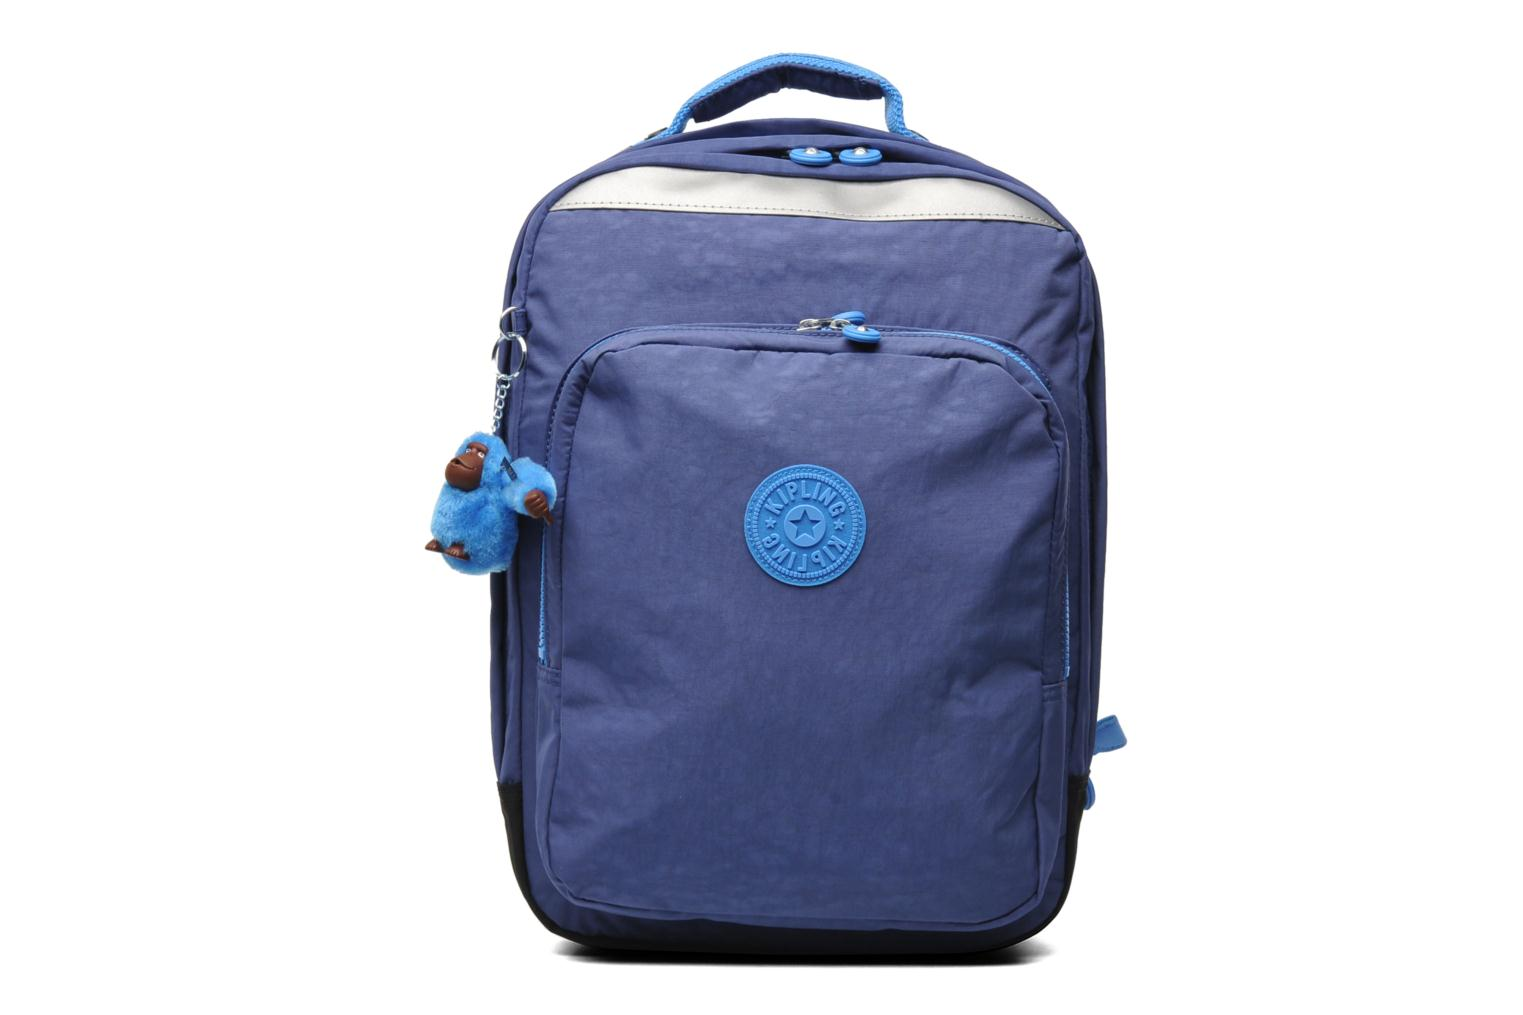 kipling College School bags in Blue at Sarenza.co.uk (187344)